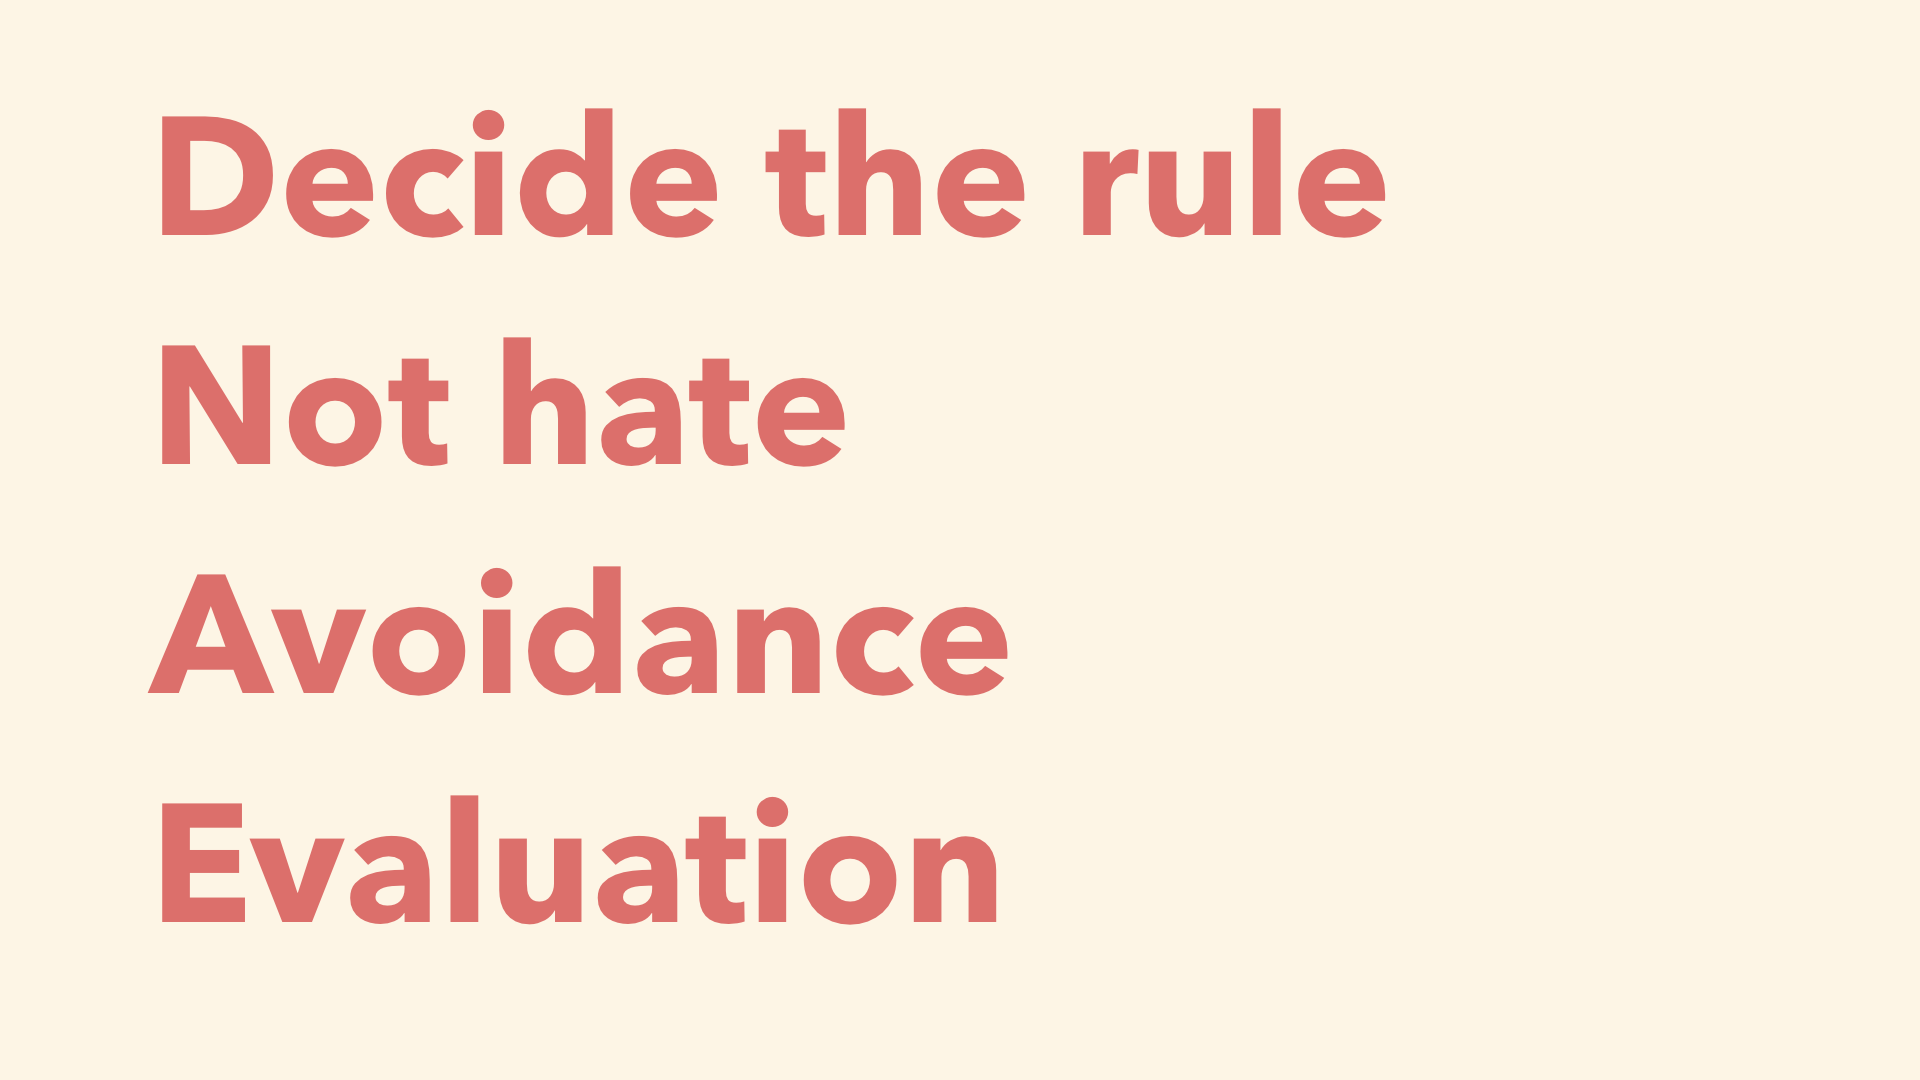 Decide the rule Not hate Avoidance Evaluation